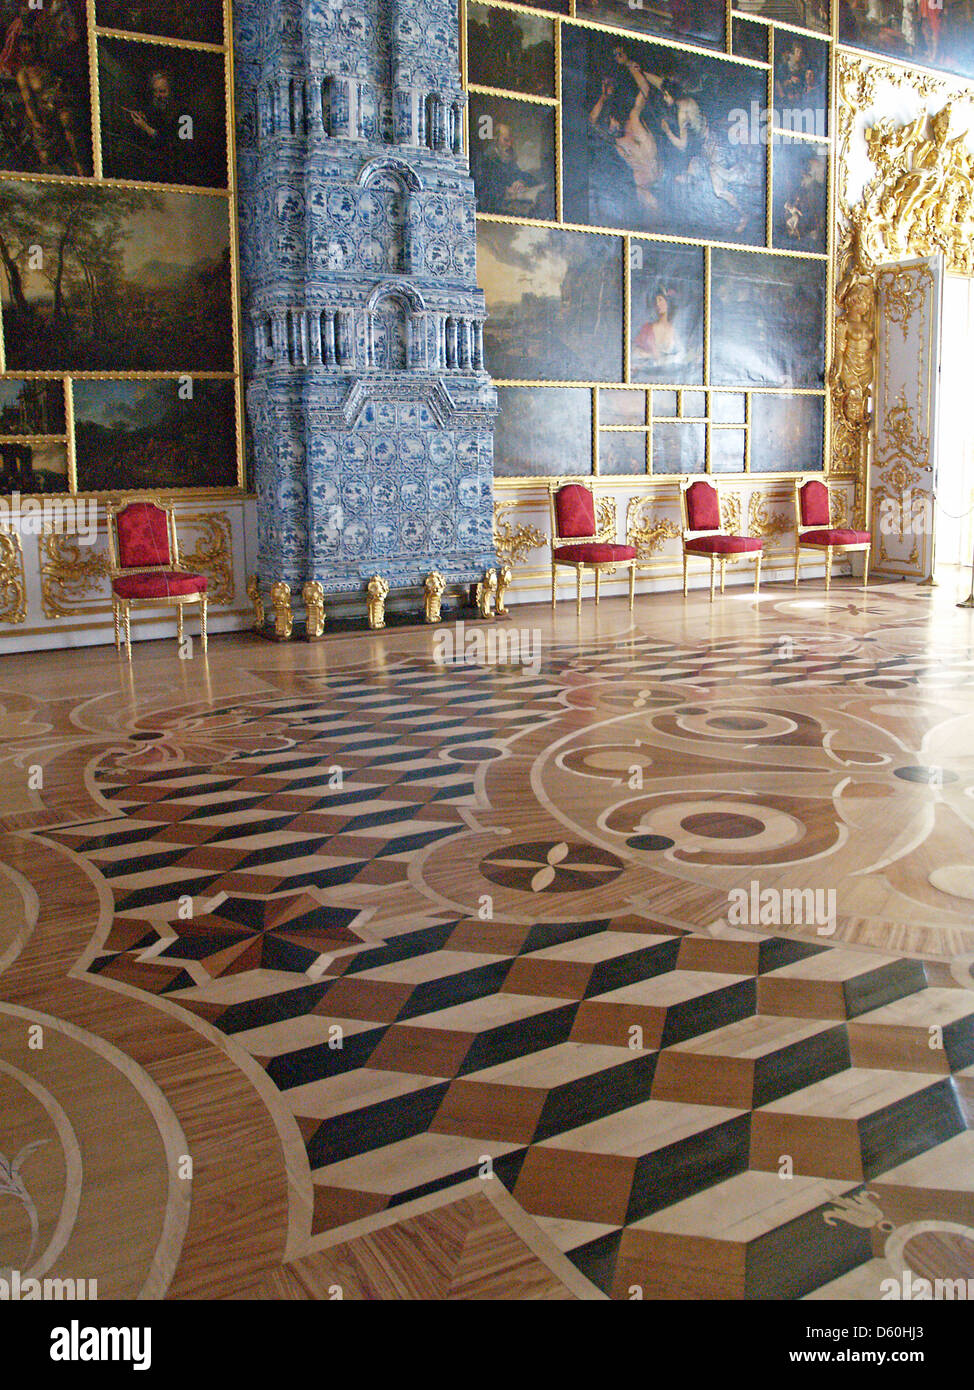 The intricate designs of the parquet floors of Catherine Palace,Tsarskoe Selo - Stock Image